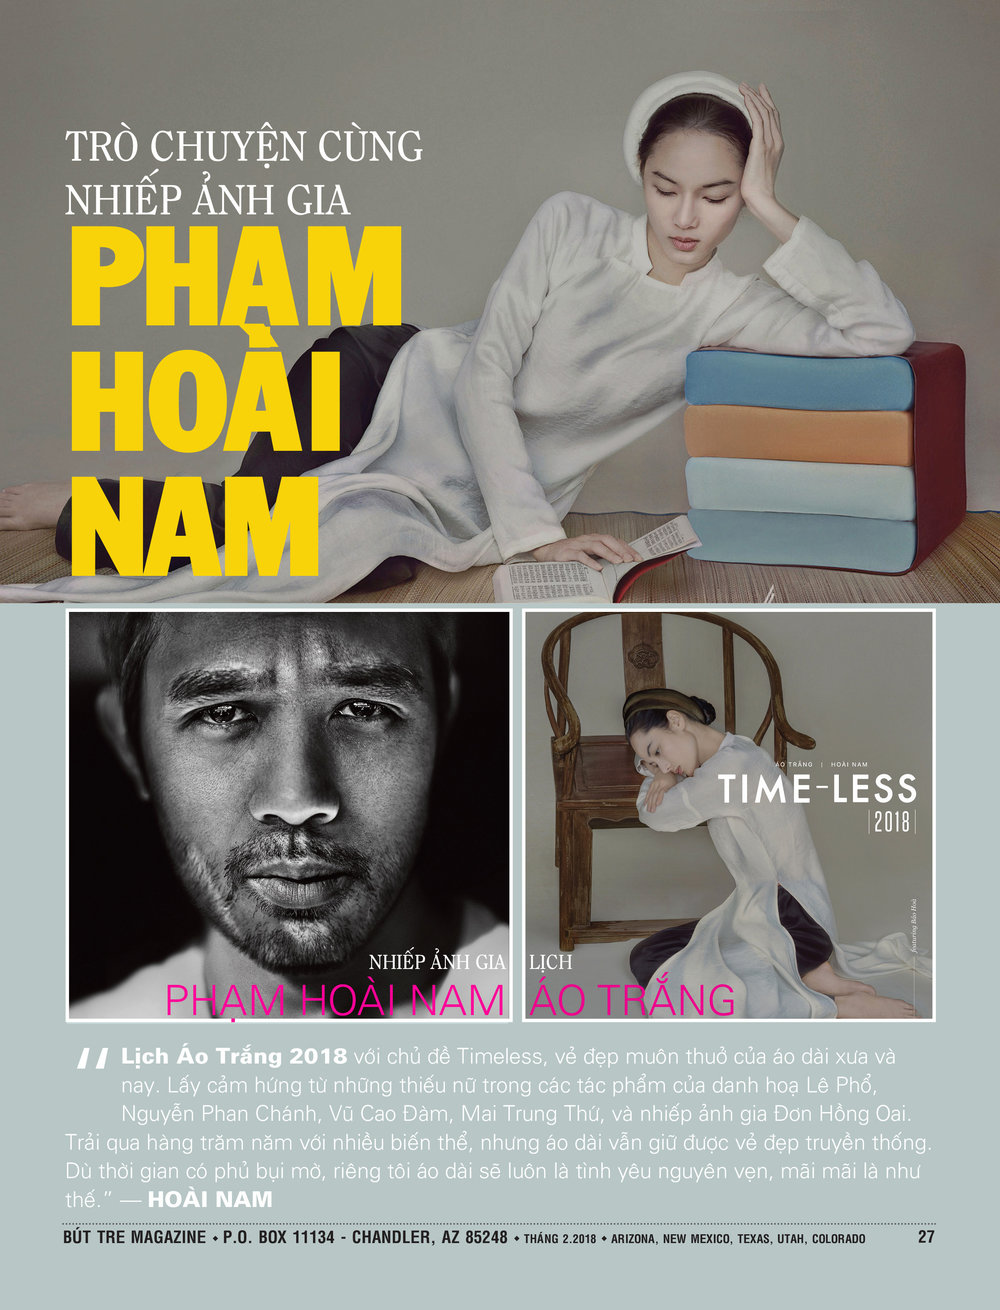 Pham-Hoai-Nam-But-Tre-Interview March 2018-1.jpg